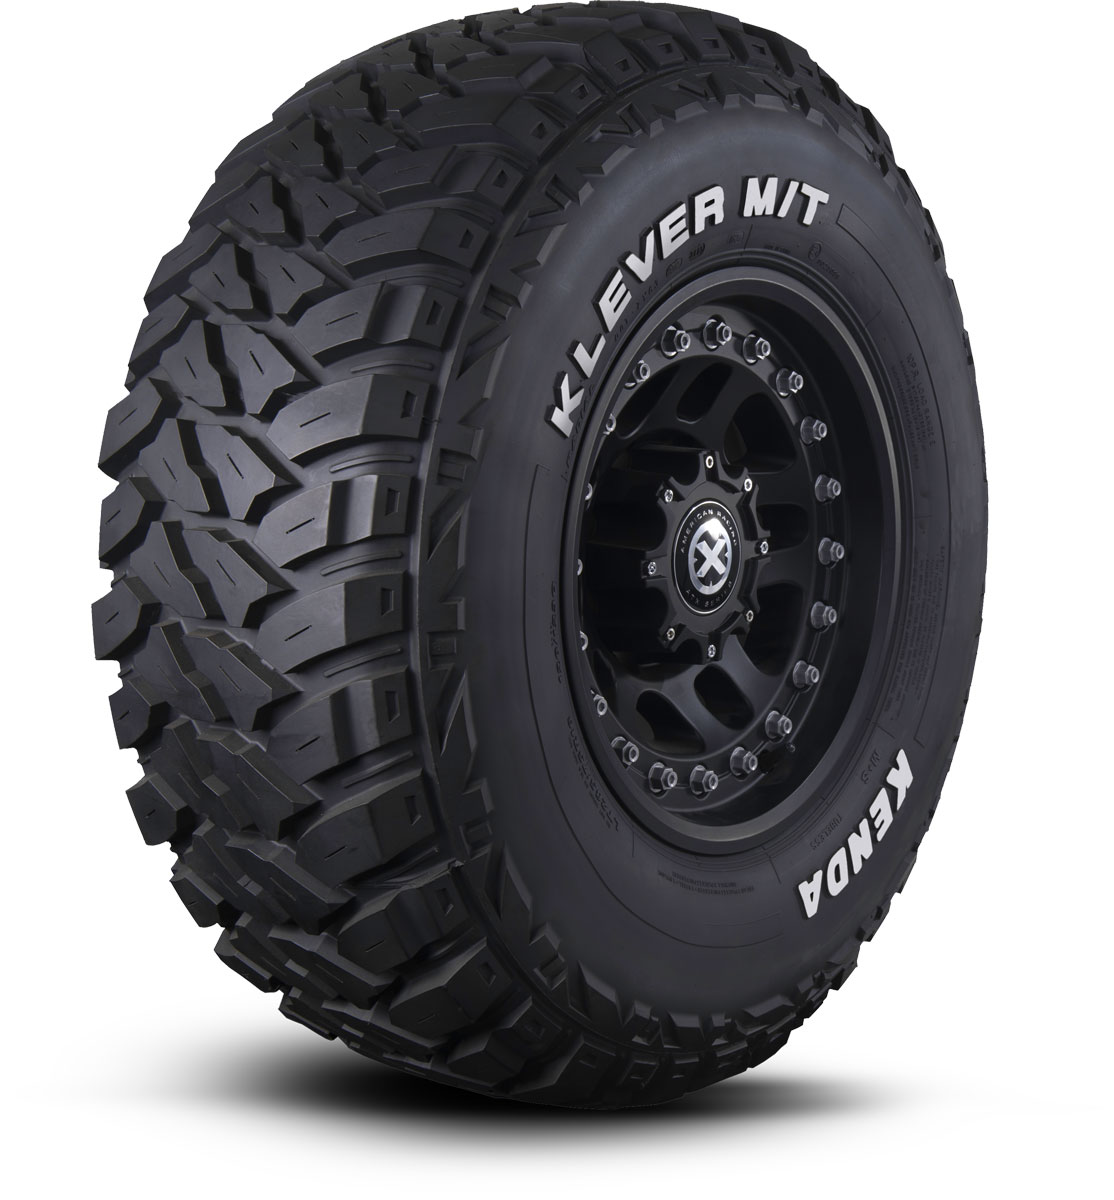 stores roverht nearby goodyear ca light type truck features canada lighting en tires tire